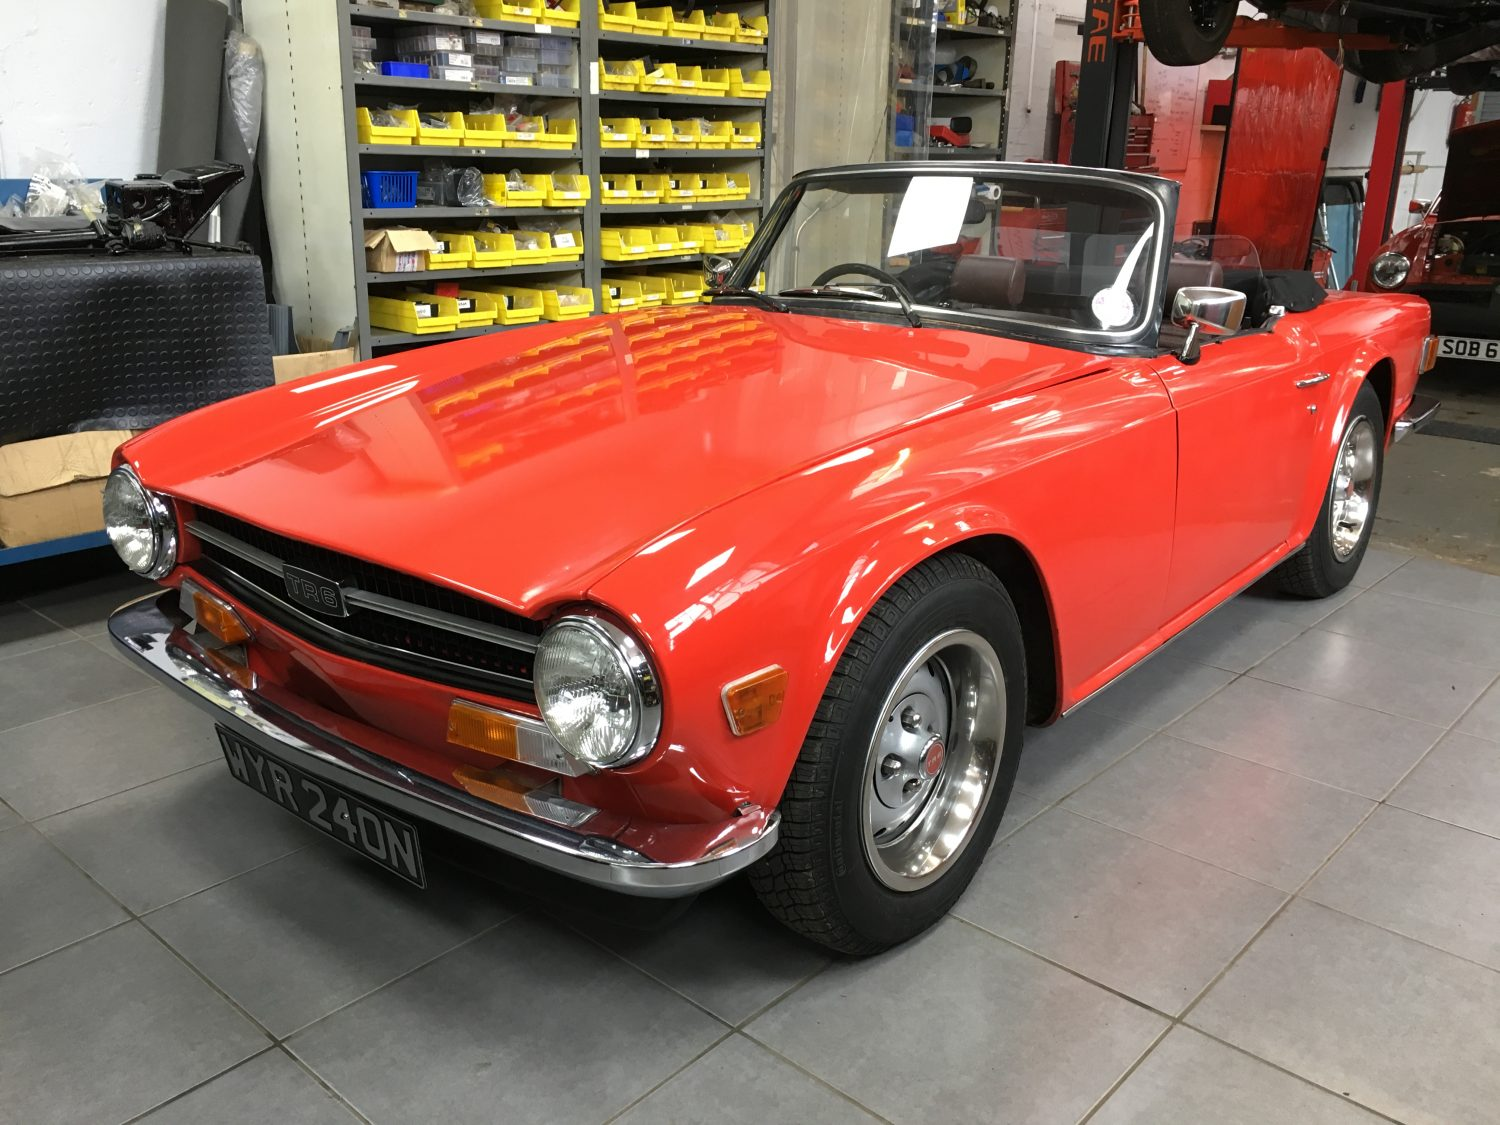 Running Issues On Our 1974 Triumph Tr6 Bridge Classic Cars